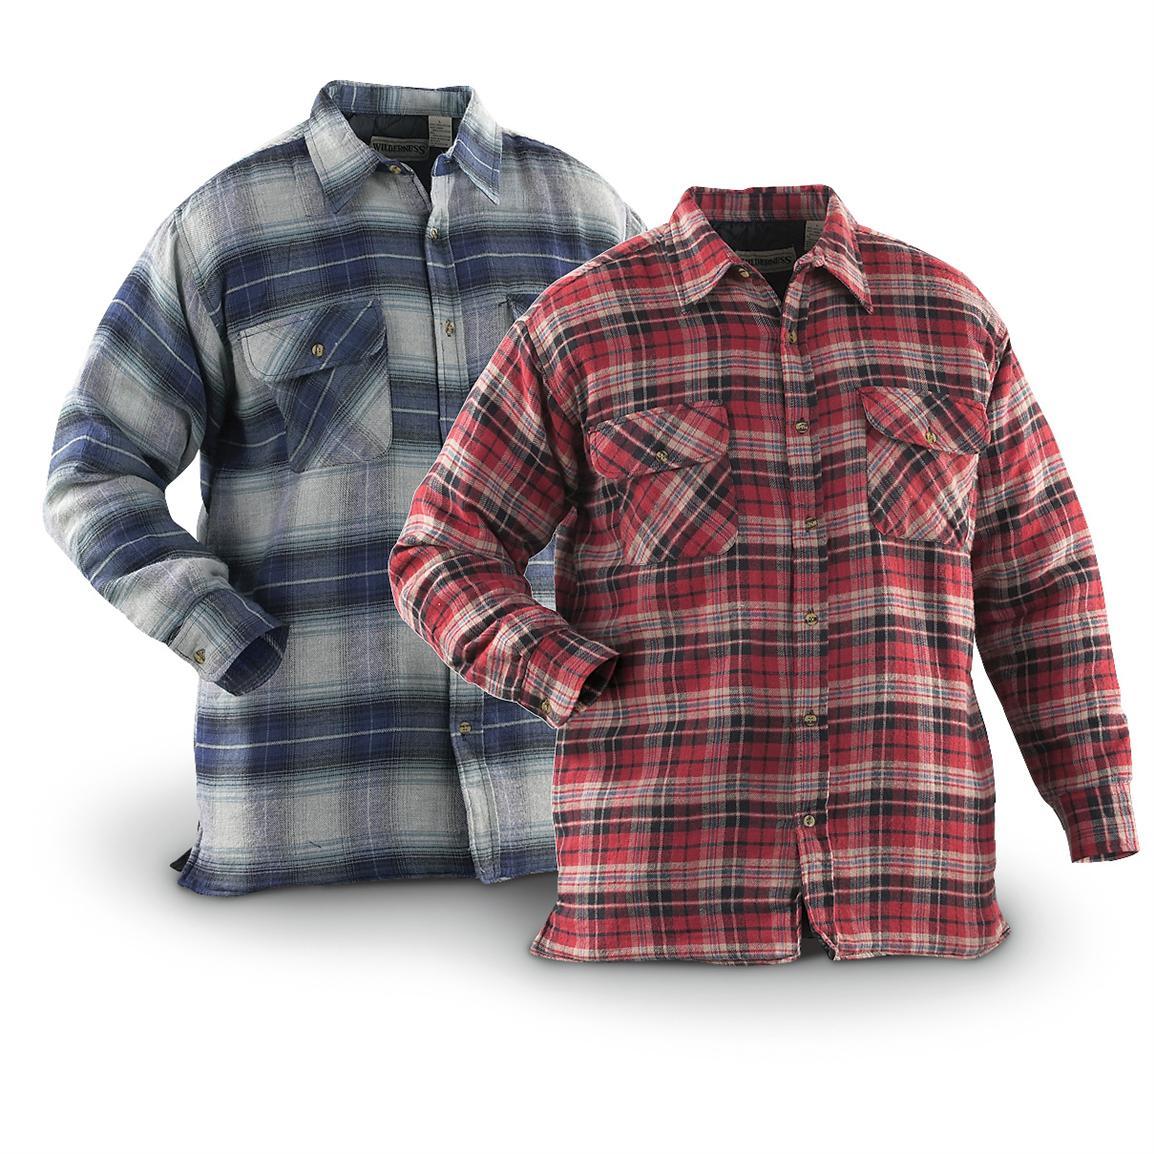 Flannel lined nylon jacket lesbian couples with man for Men flannel shirt jacket with quilted lining